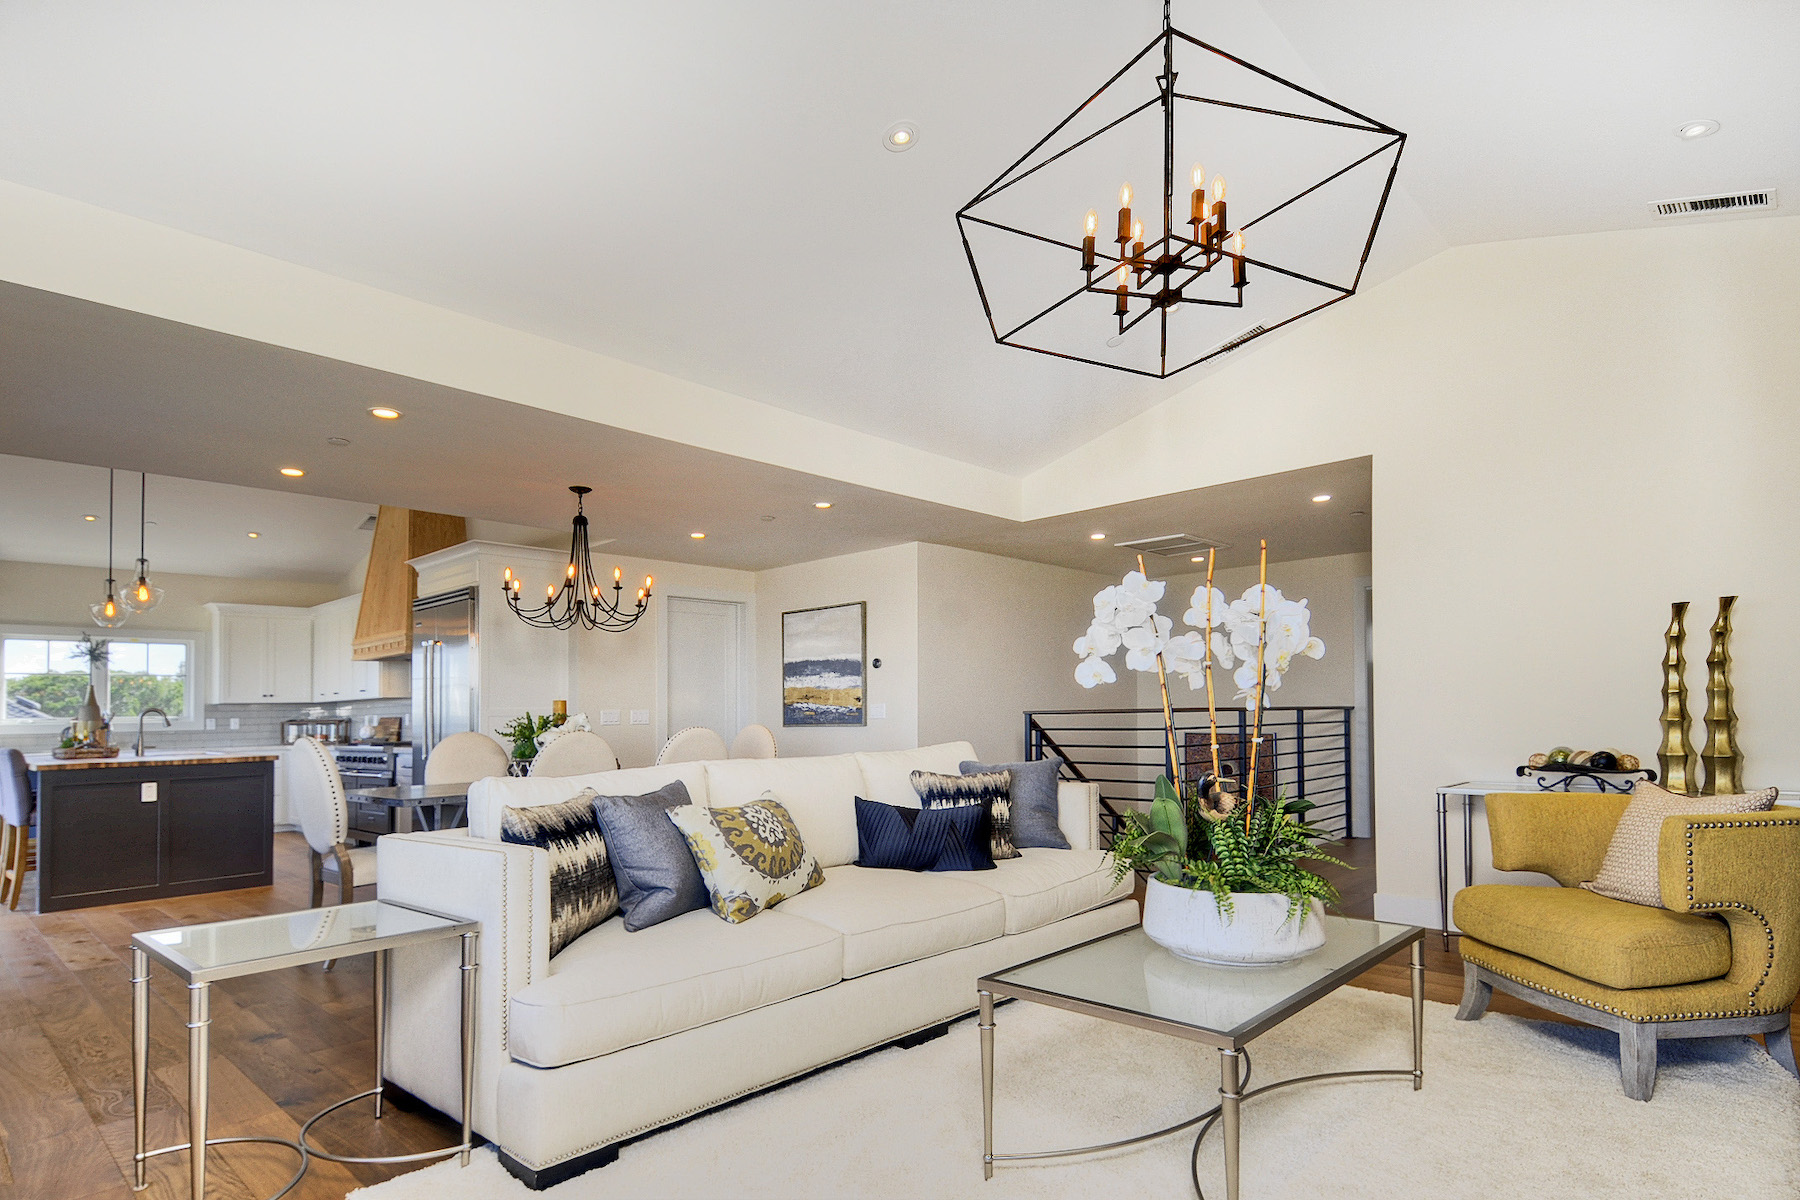 Single Family Home for Active at Custom Built, Executive Home 747 Crestview Drive San Carlos, California 94070 United States